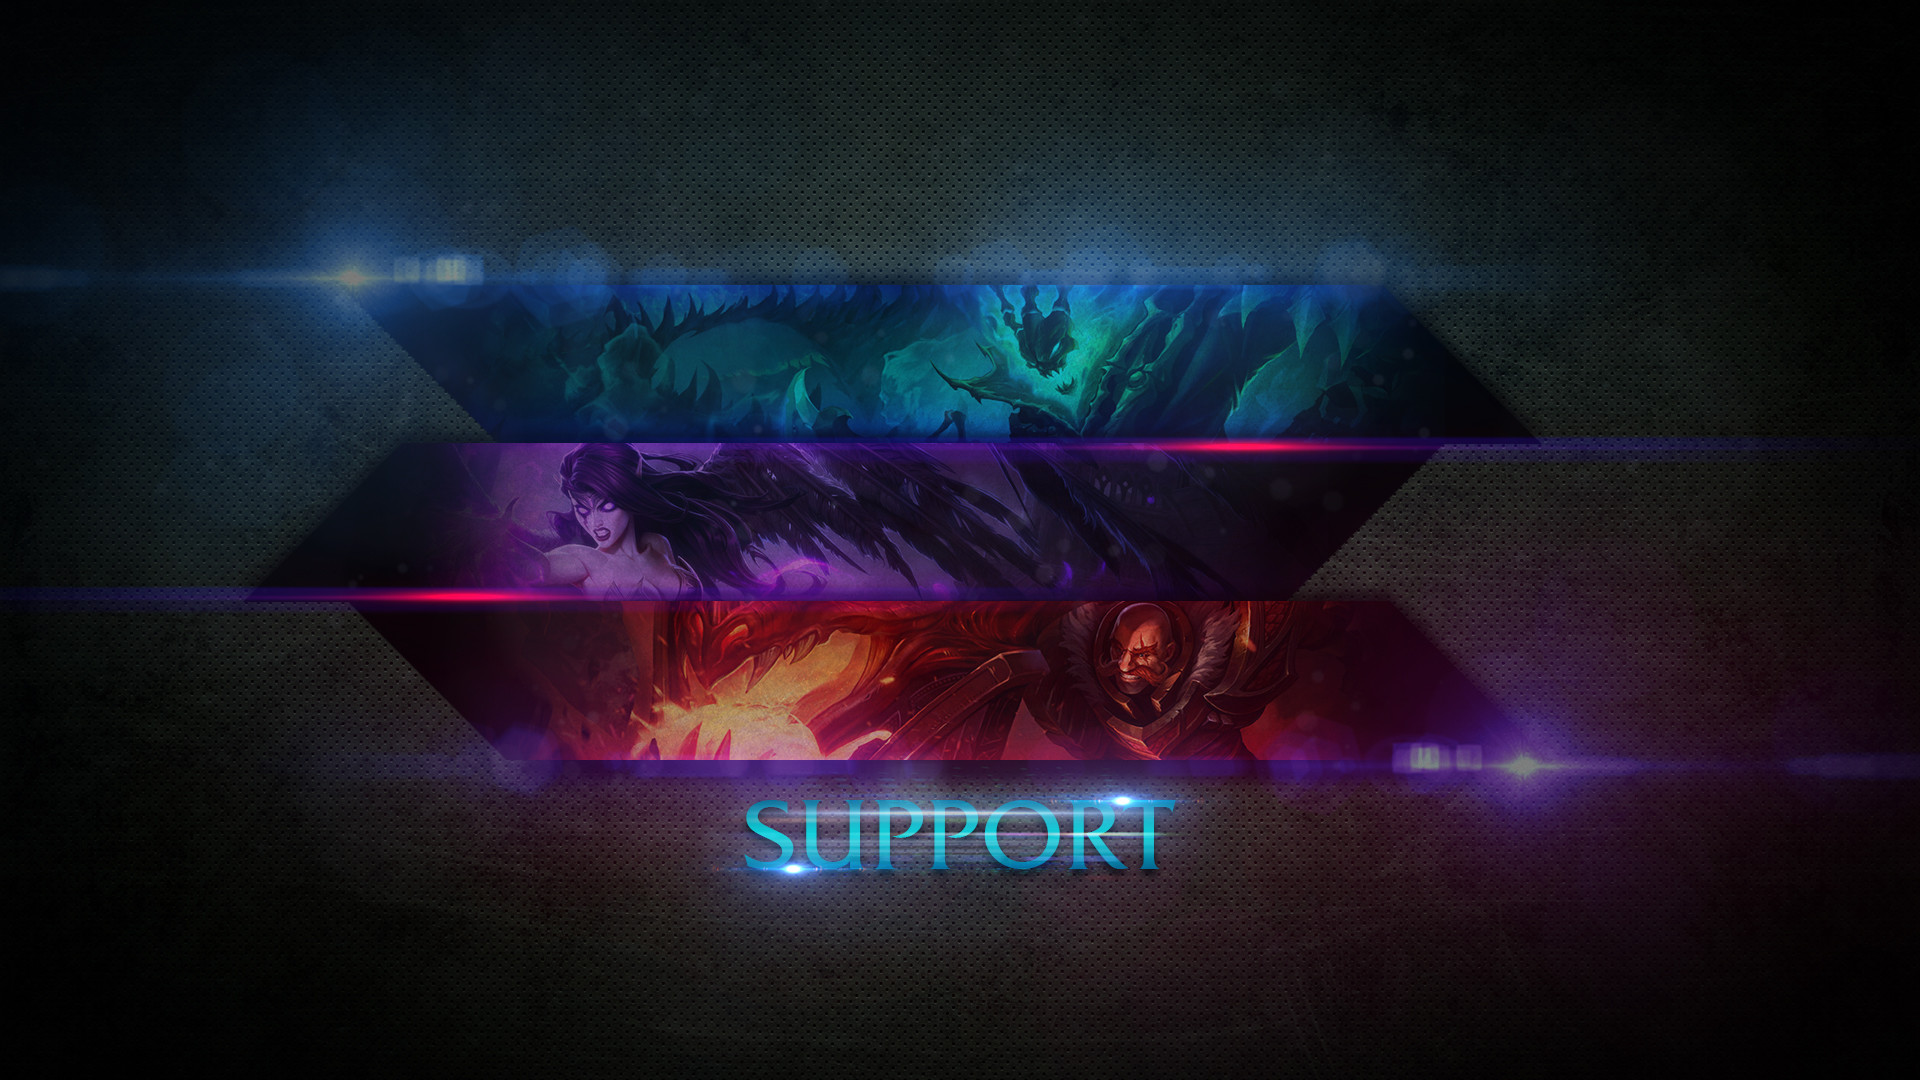 League Of Legends Support Wallpaper by ComaniciRobert League Of Legends  Support Wallpaper by ComaniciRobert